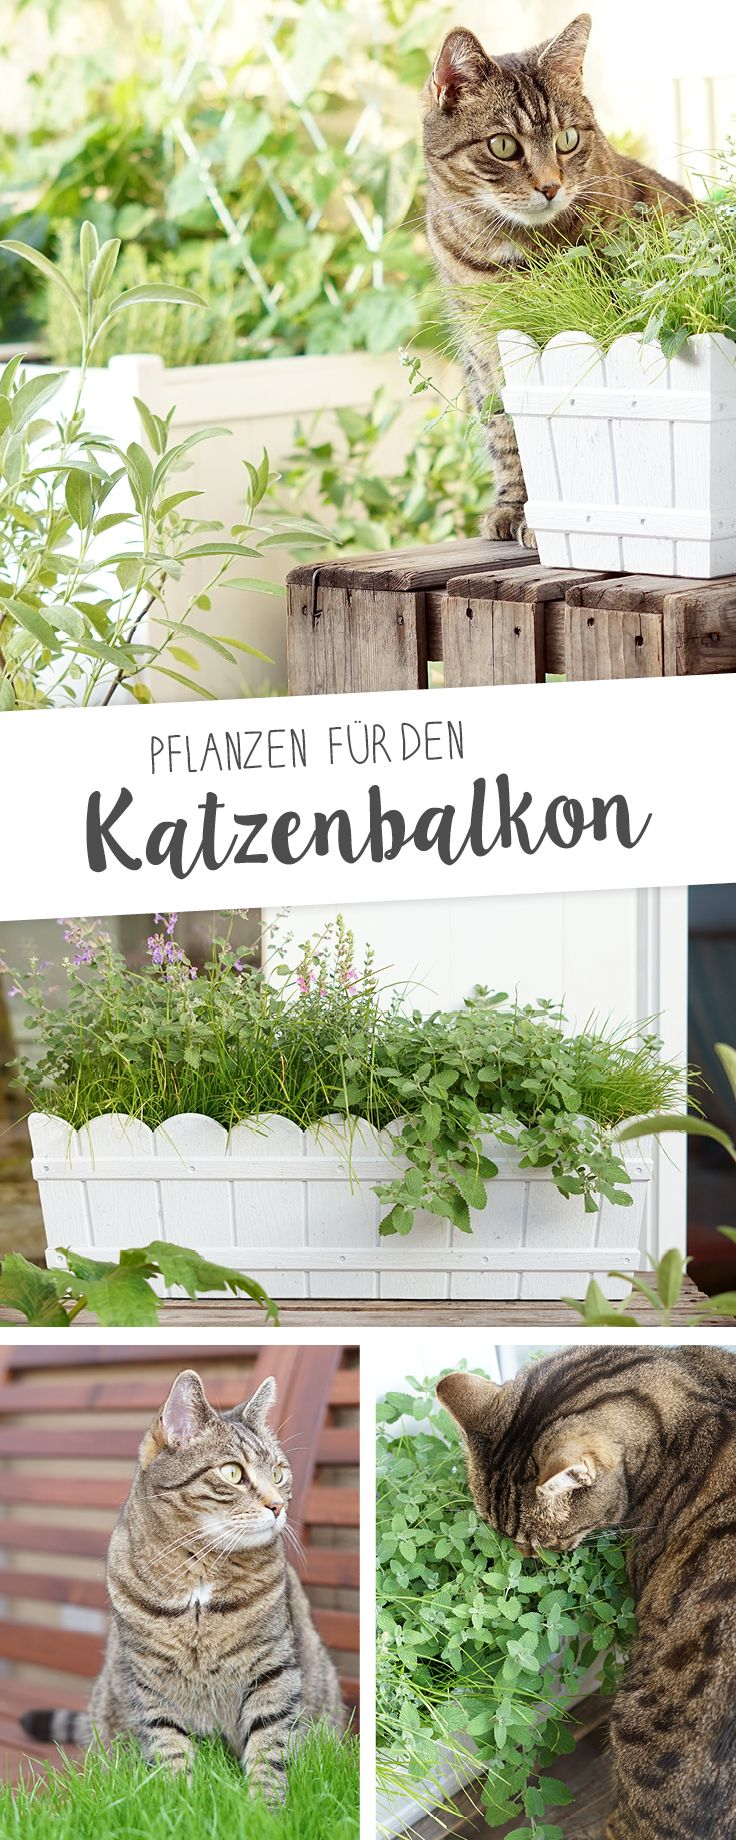 unser katzenbalkon die pflanzen balkon urban gardening pinterest katzen katzengras. Black Bedroom Furniture Sets. Home Design Ideas